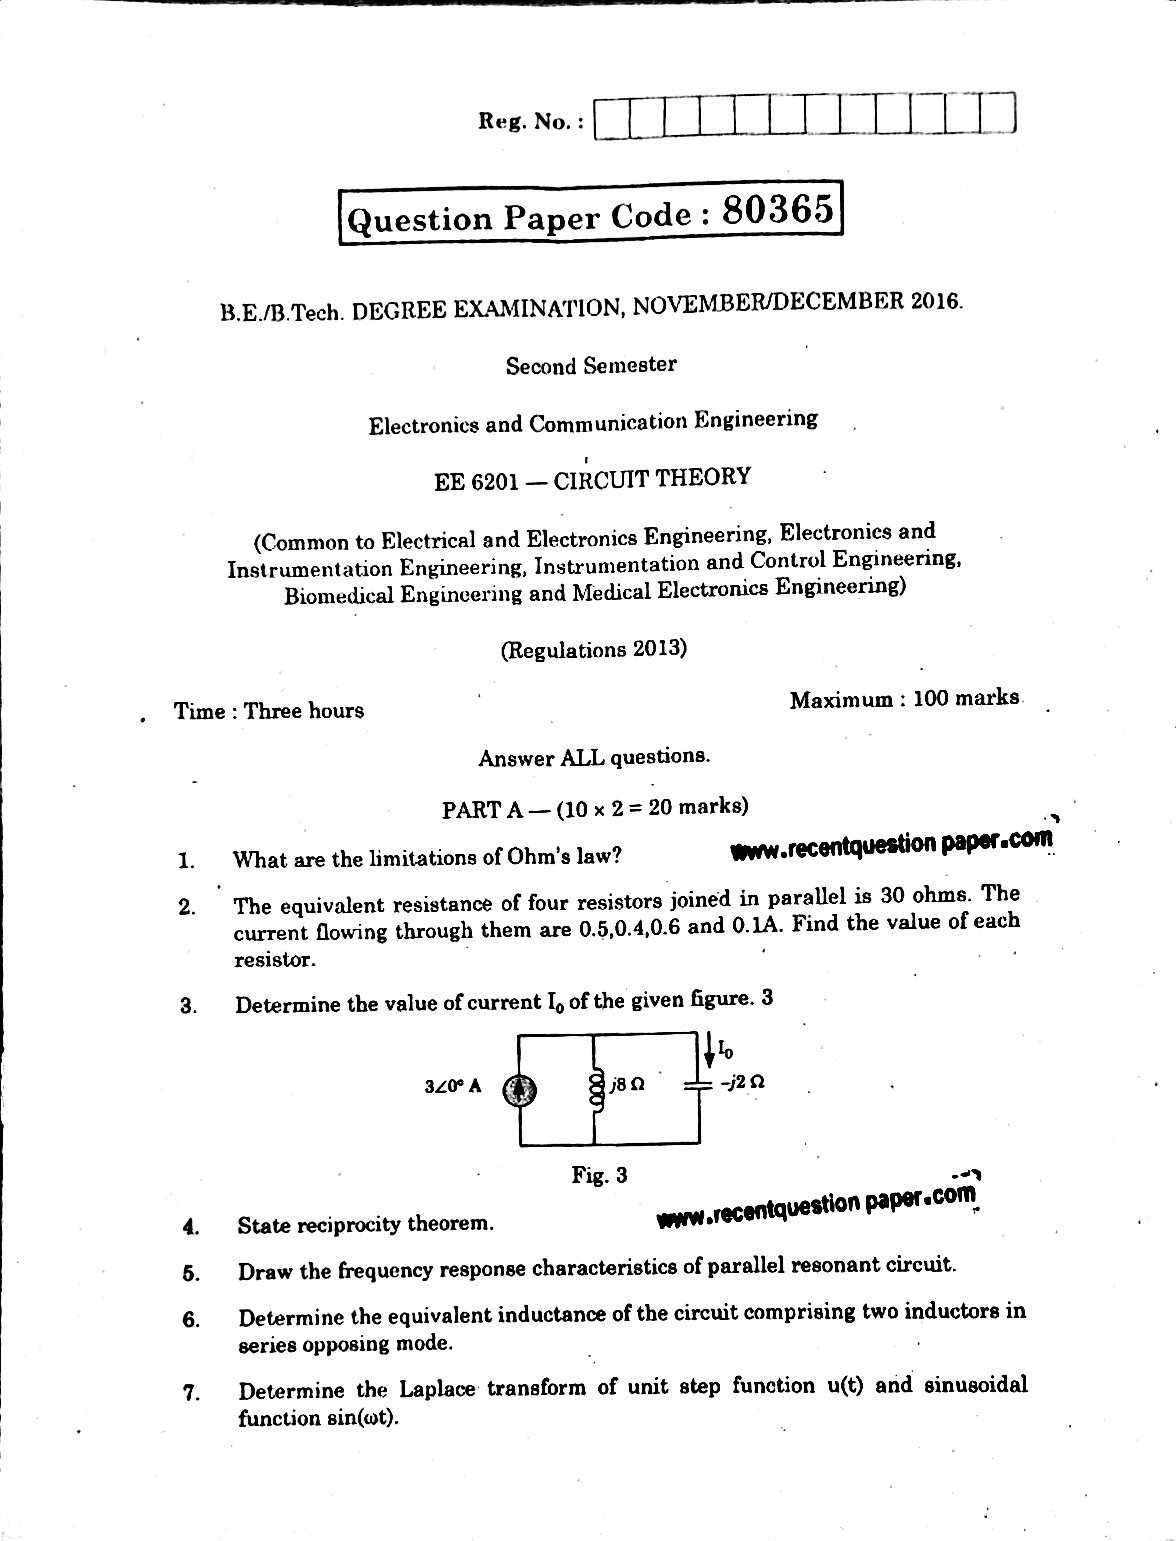 ee6201 circuit theory 0 recent question paperee6201 circuit theory 0